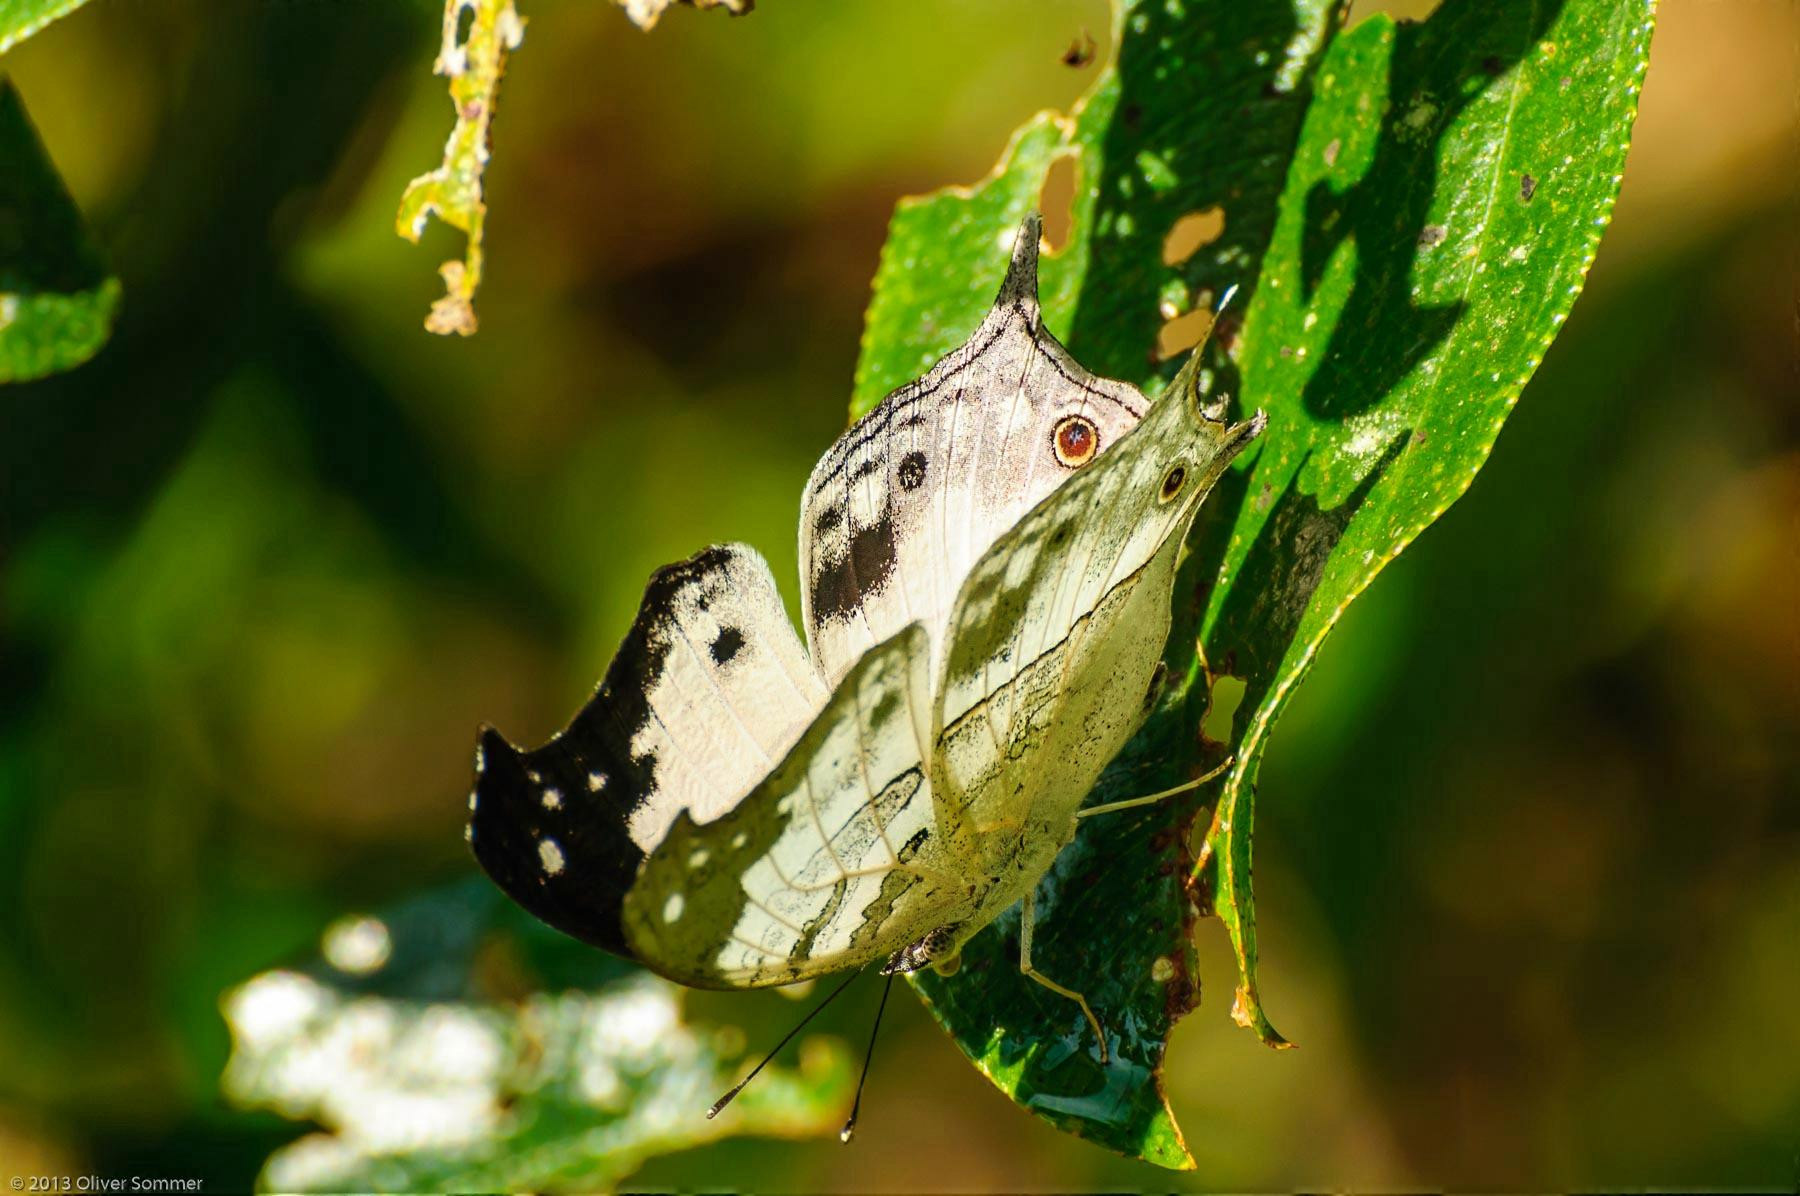 Clouded Mother-of-pearl Schmetterling Protogoniomorpha Anacardii Duprei